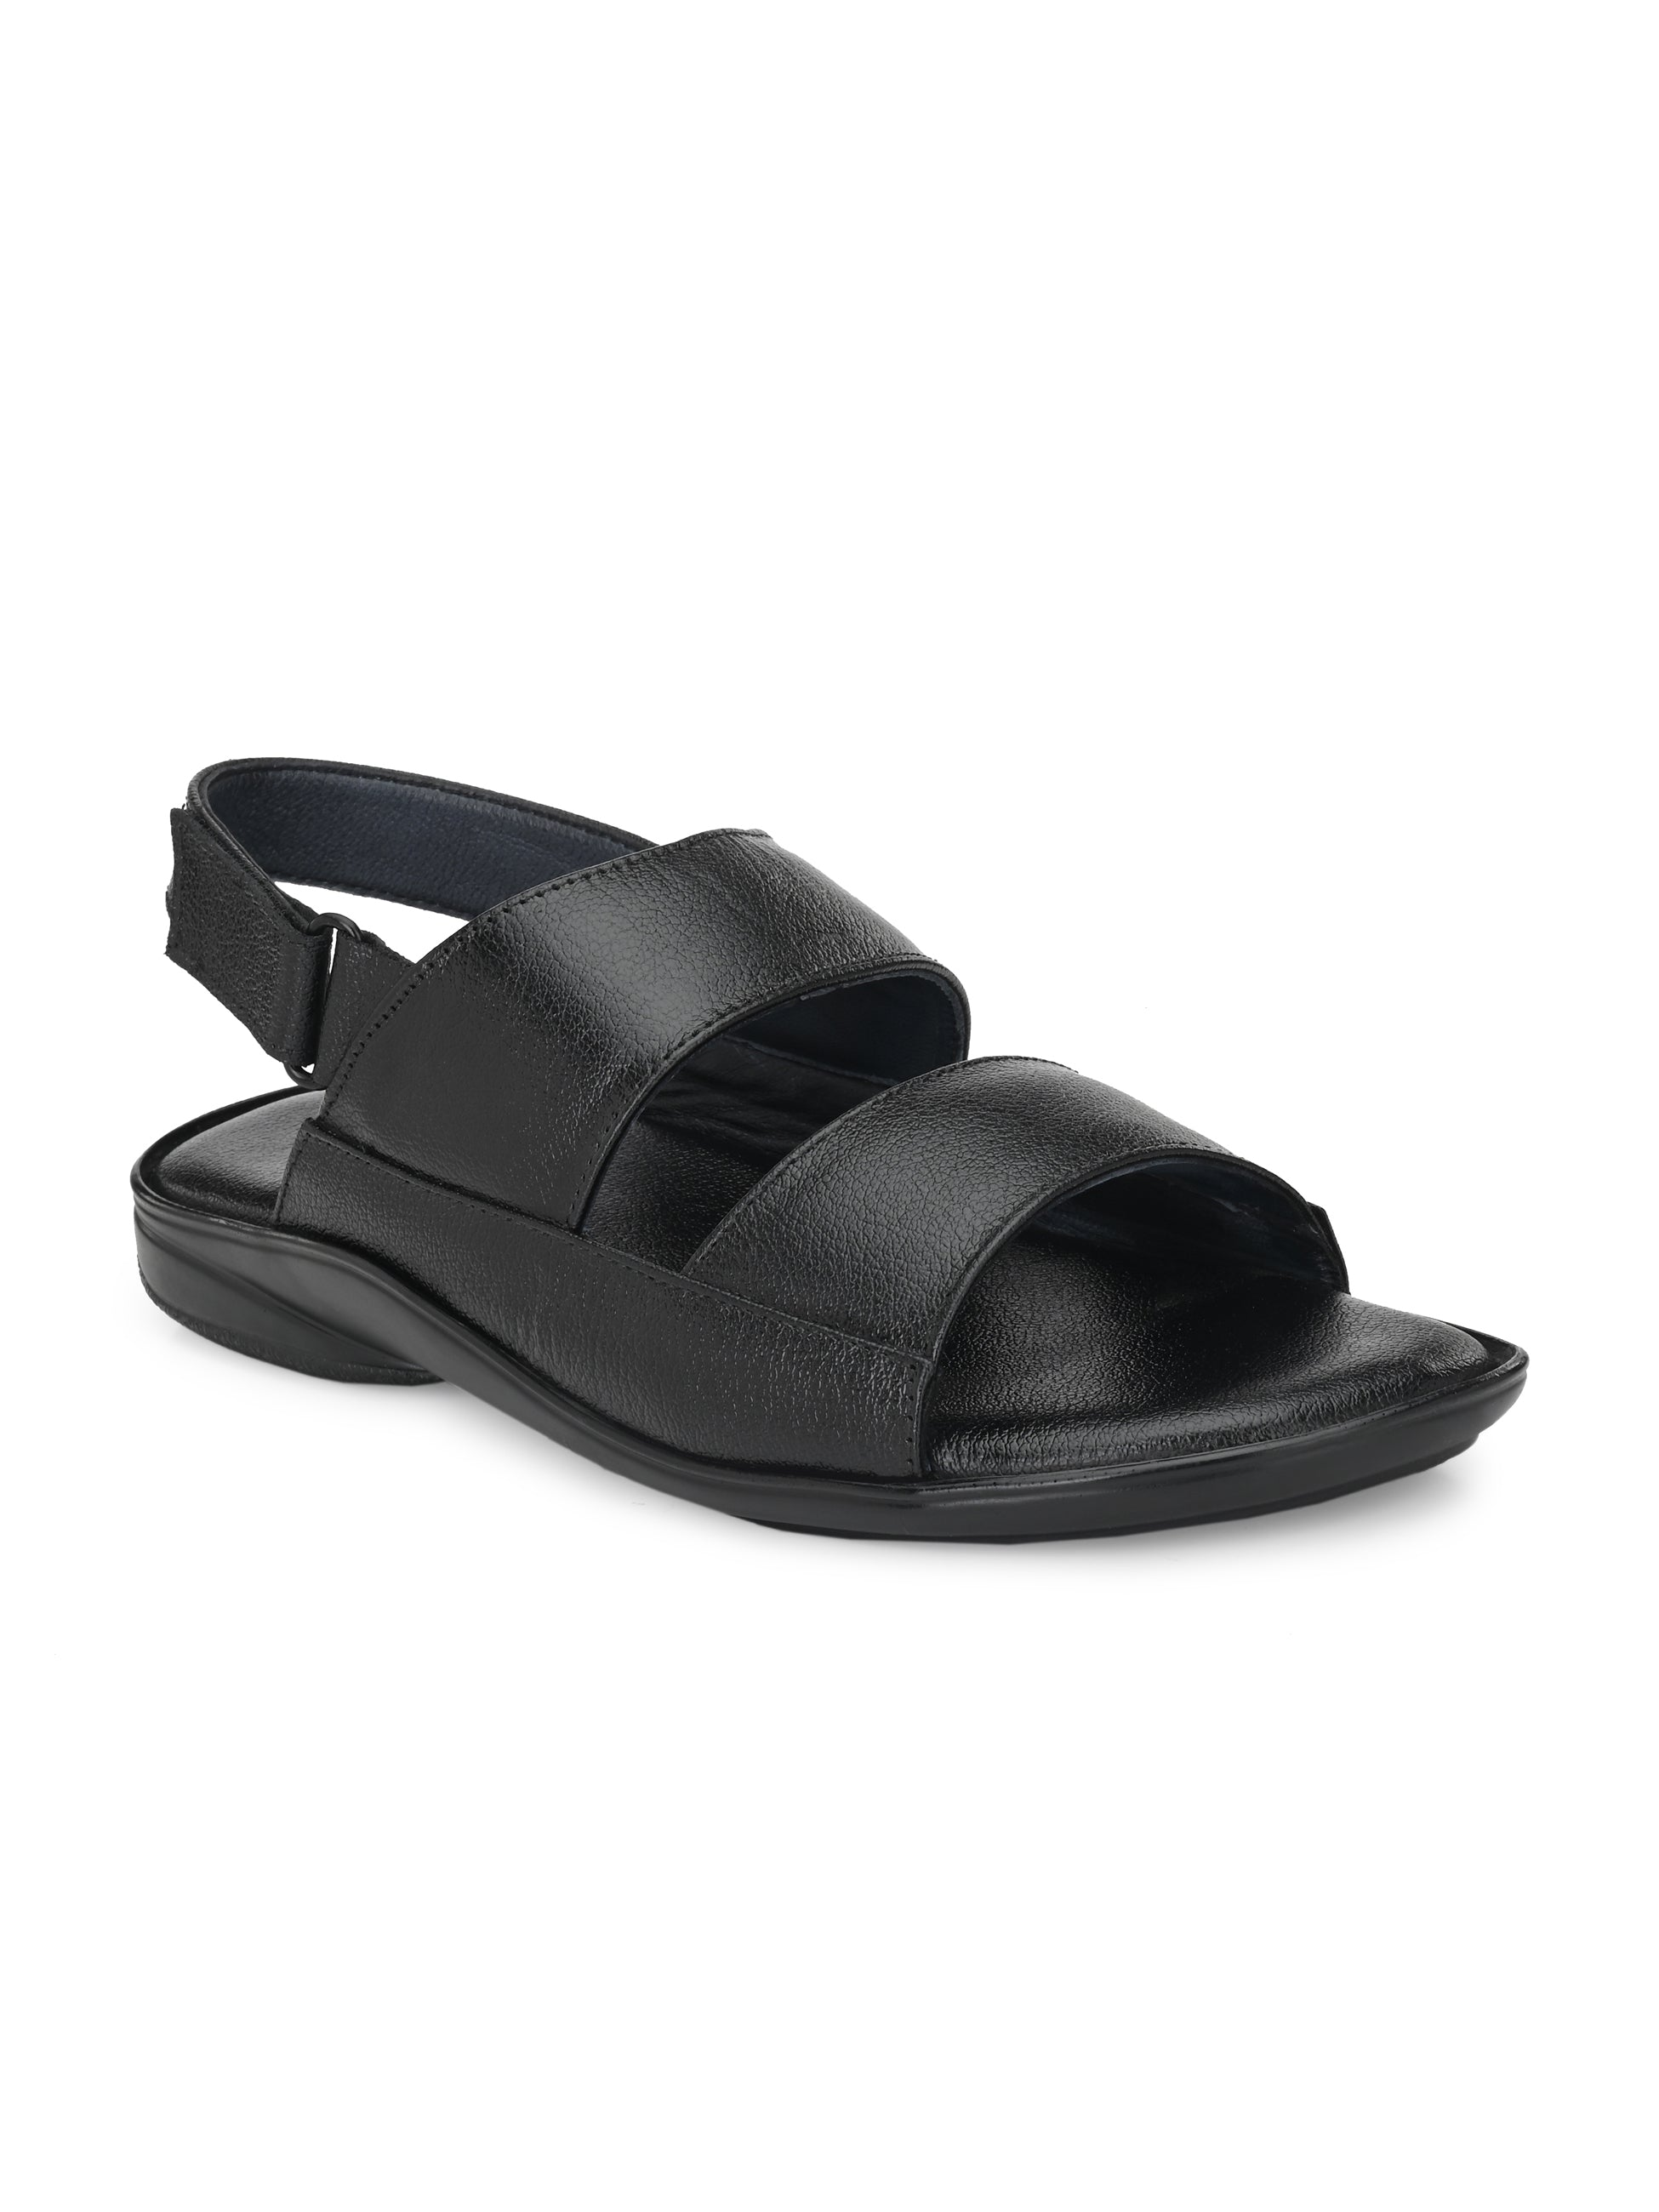 Lavish Black Genuine Leather Open Toe Sandal - shoegaro